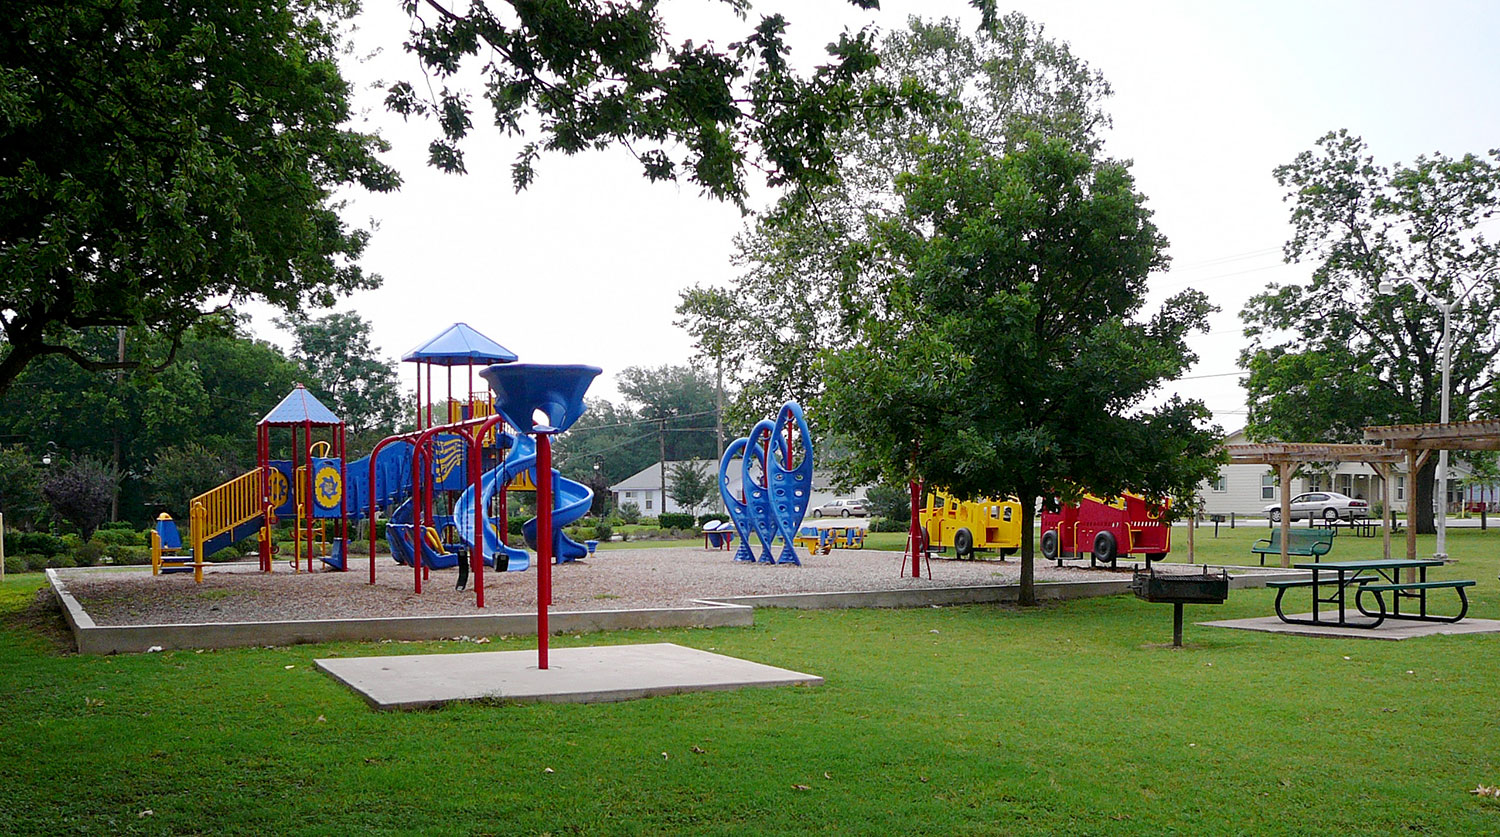 Playscape at Kelley Park in Georgetown, TX